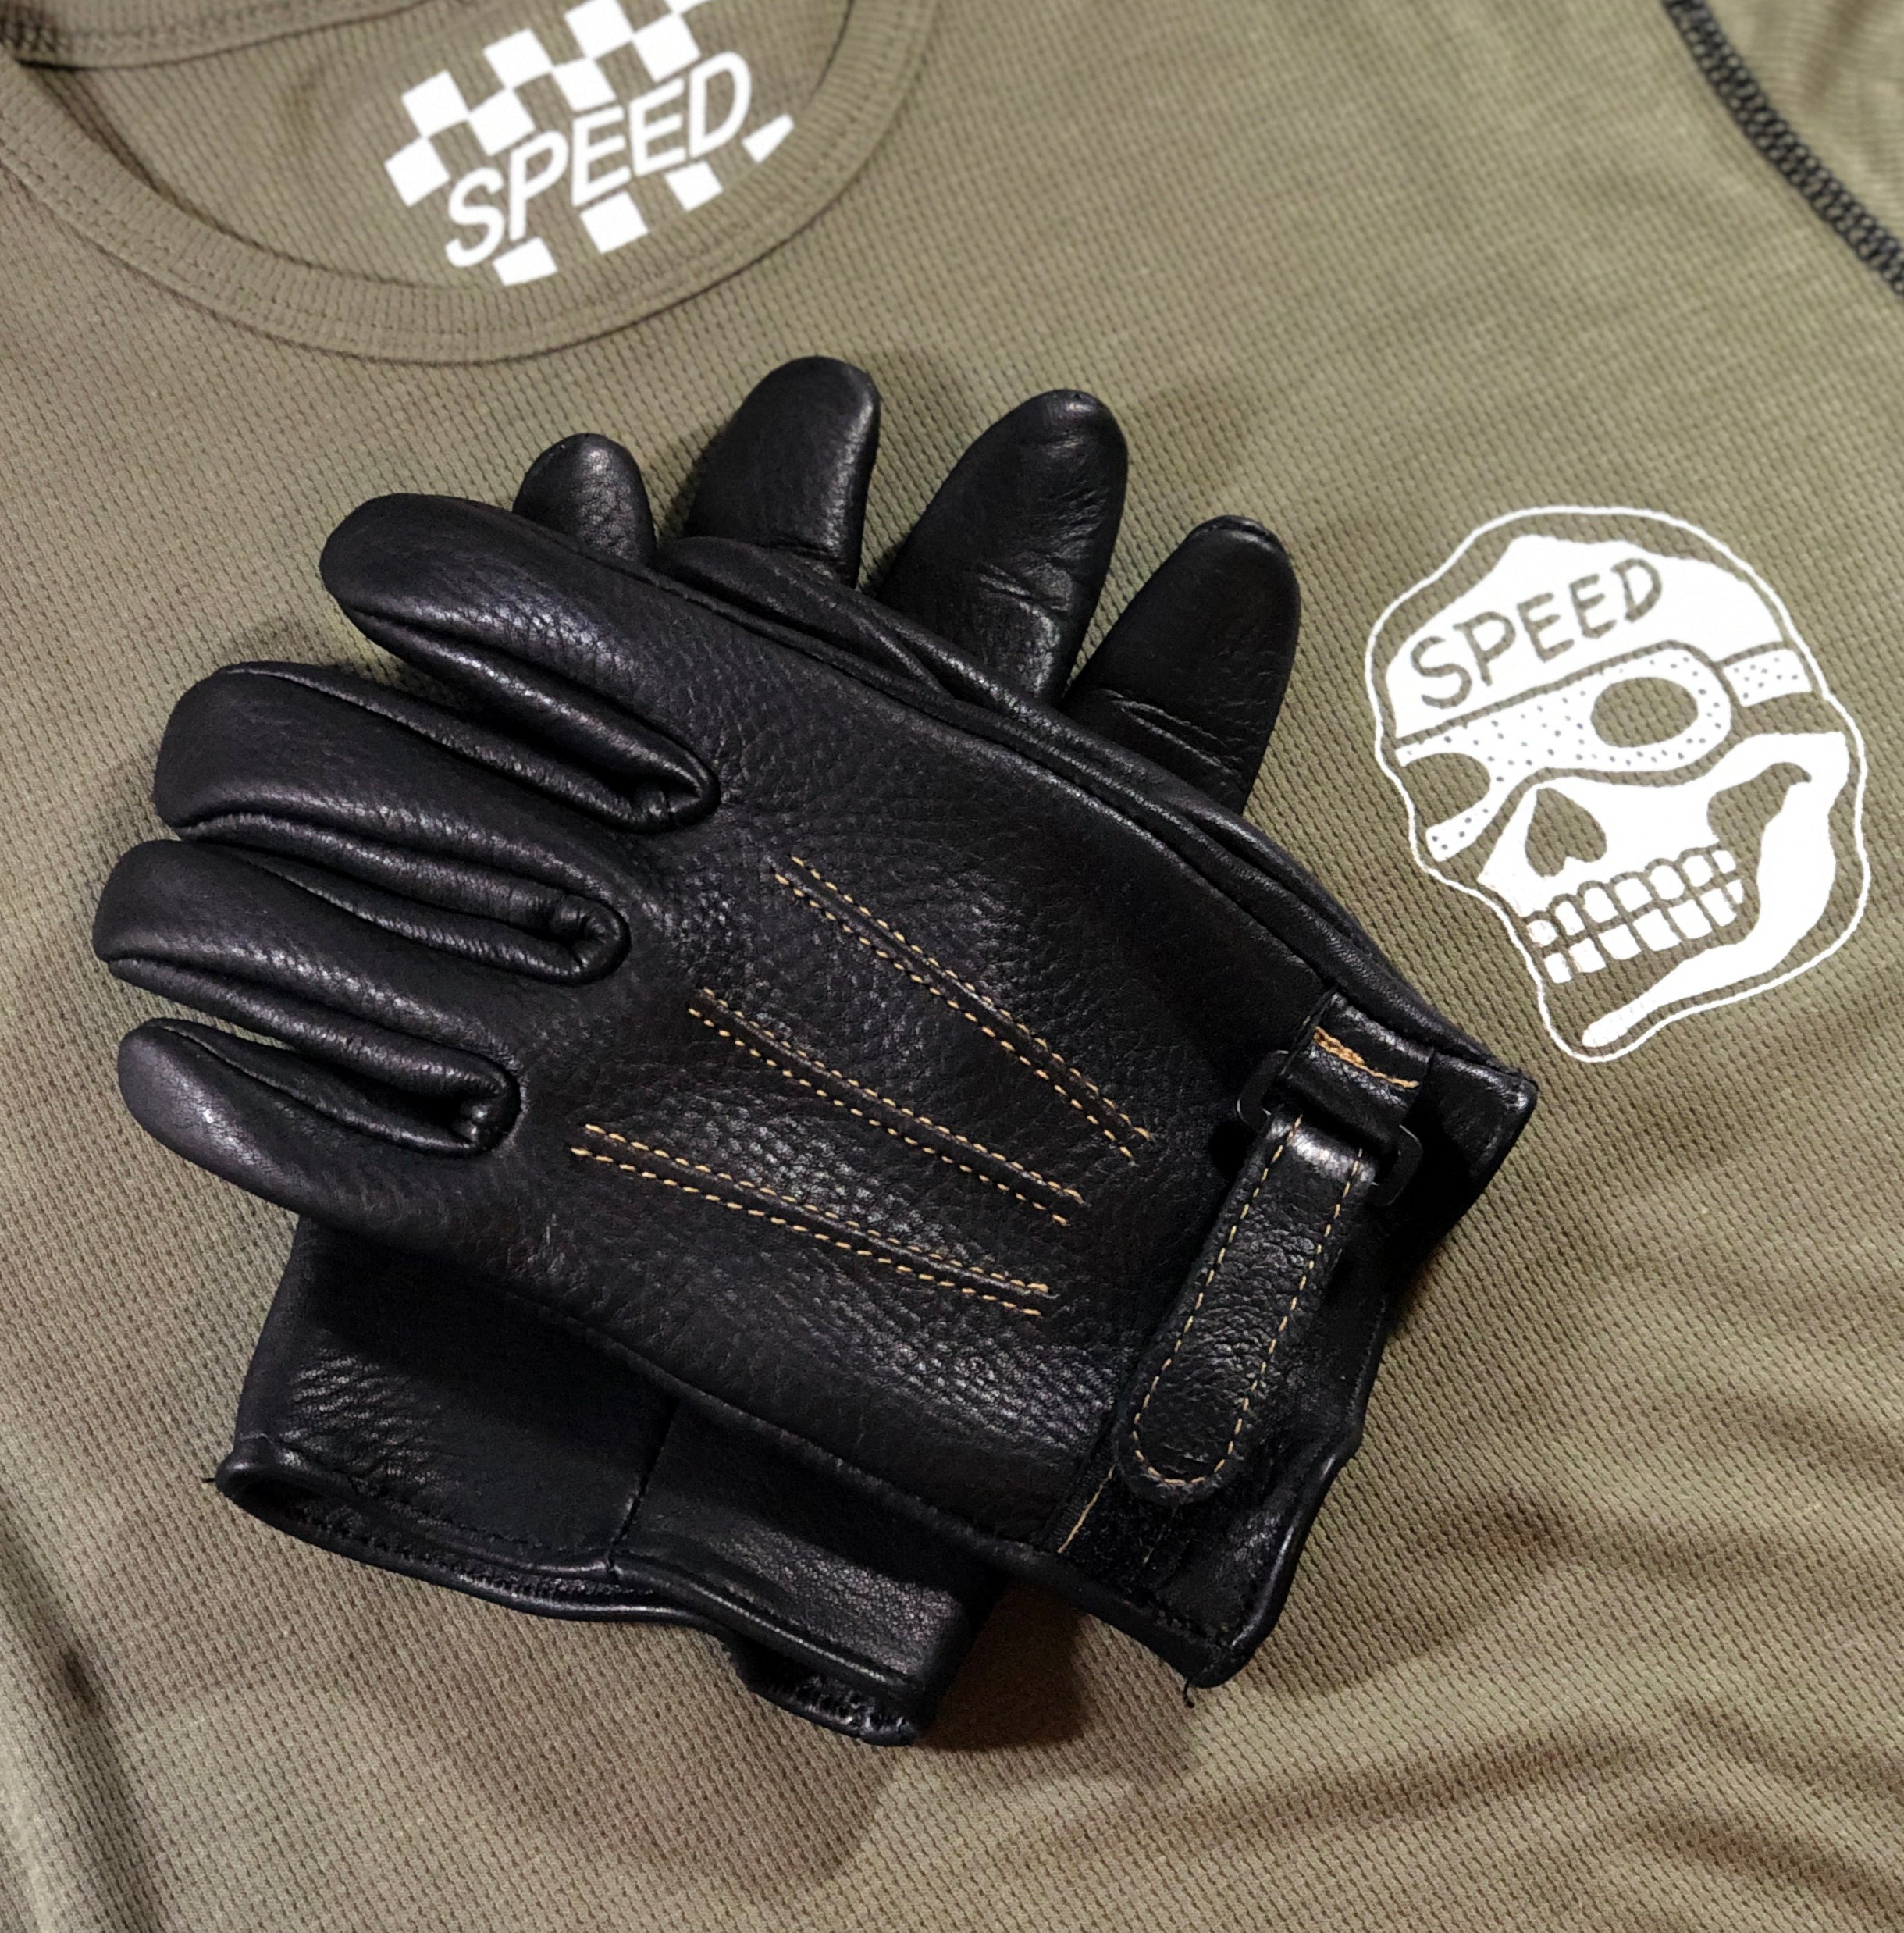 MIDNIGHT RIDER'S MOTORCYCLE GLOVES